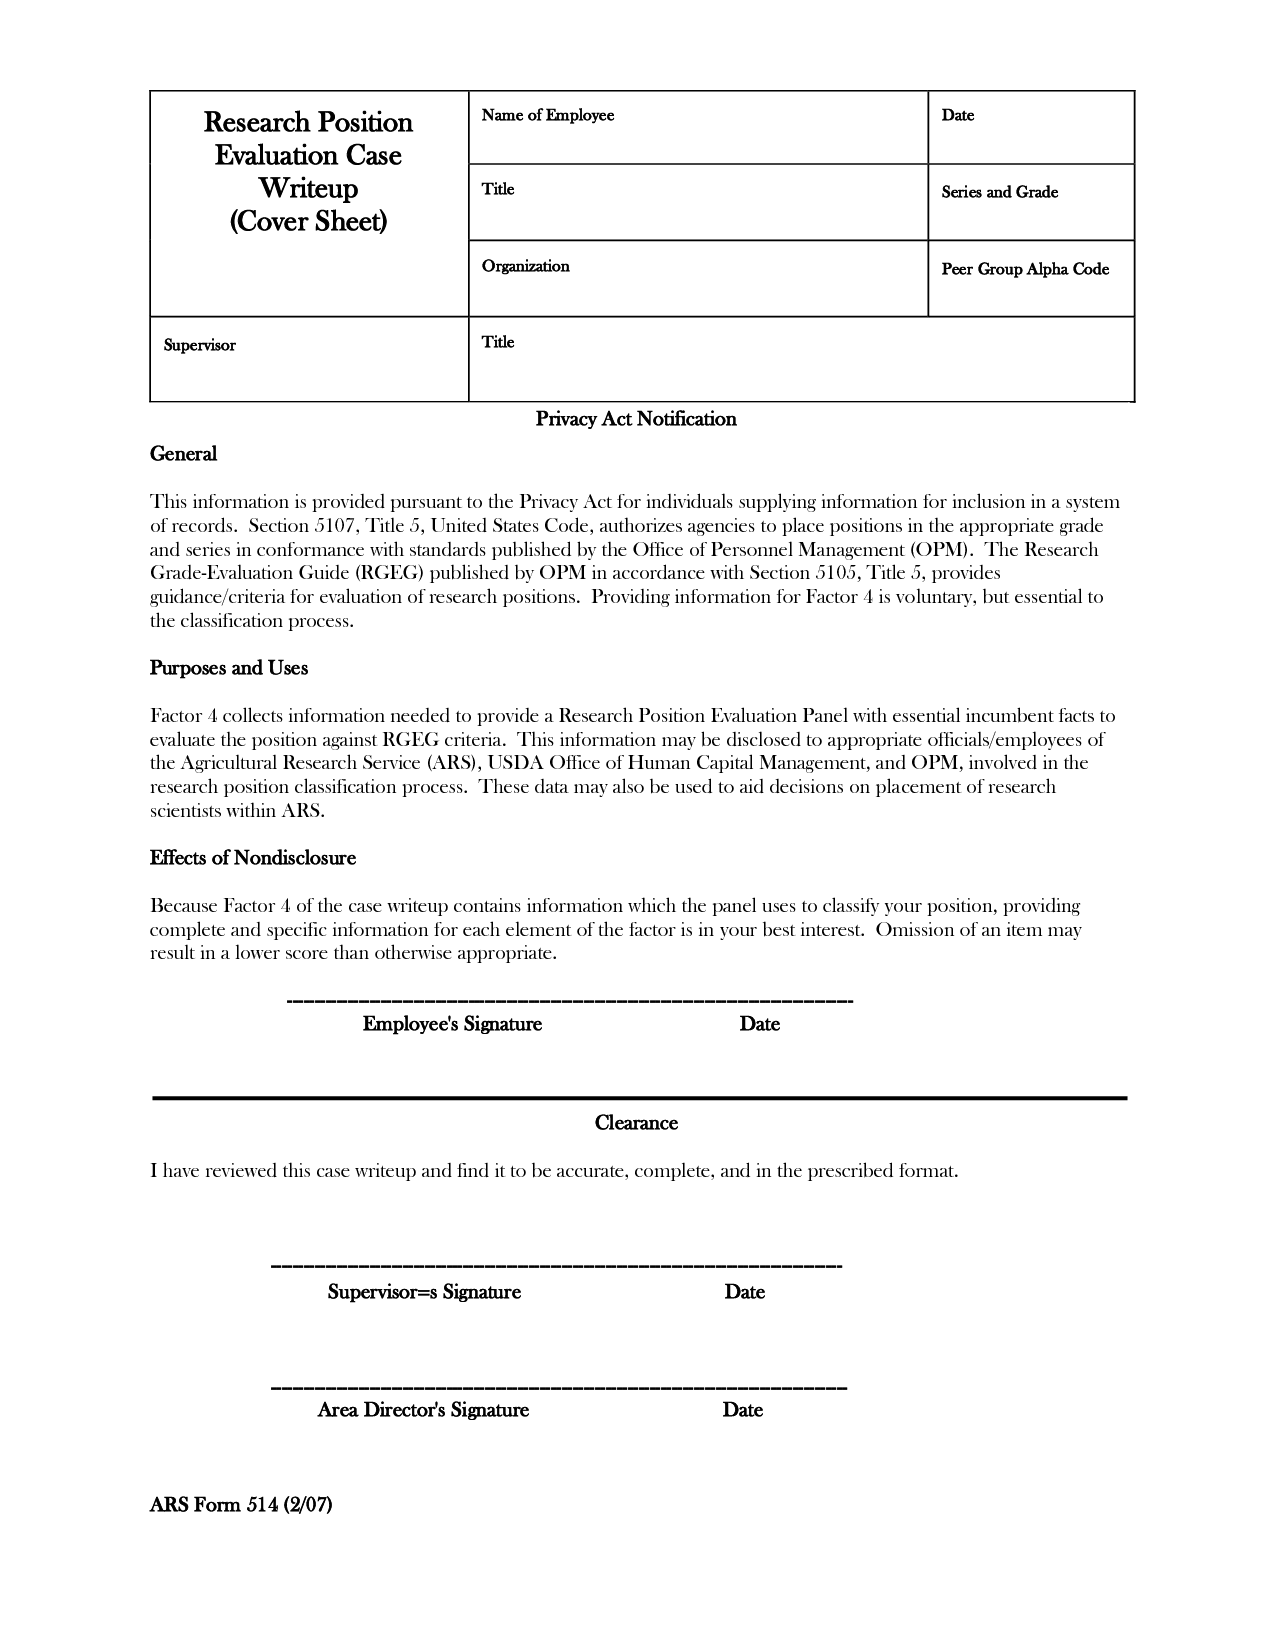 Emloyment Write Up  Employee Write Up Form Download  Business